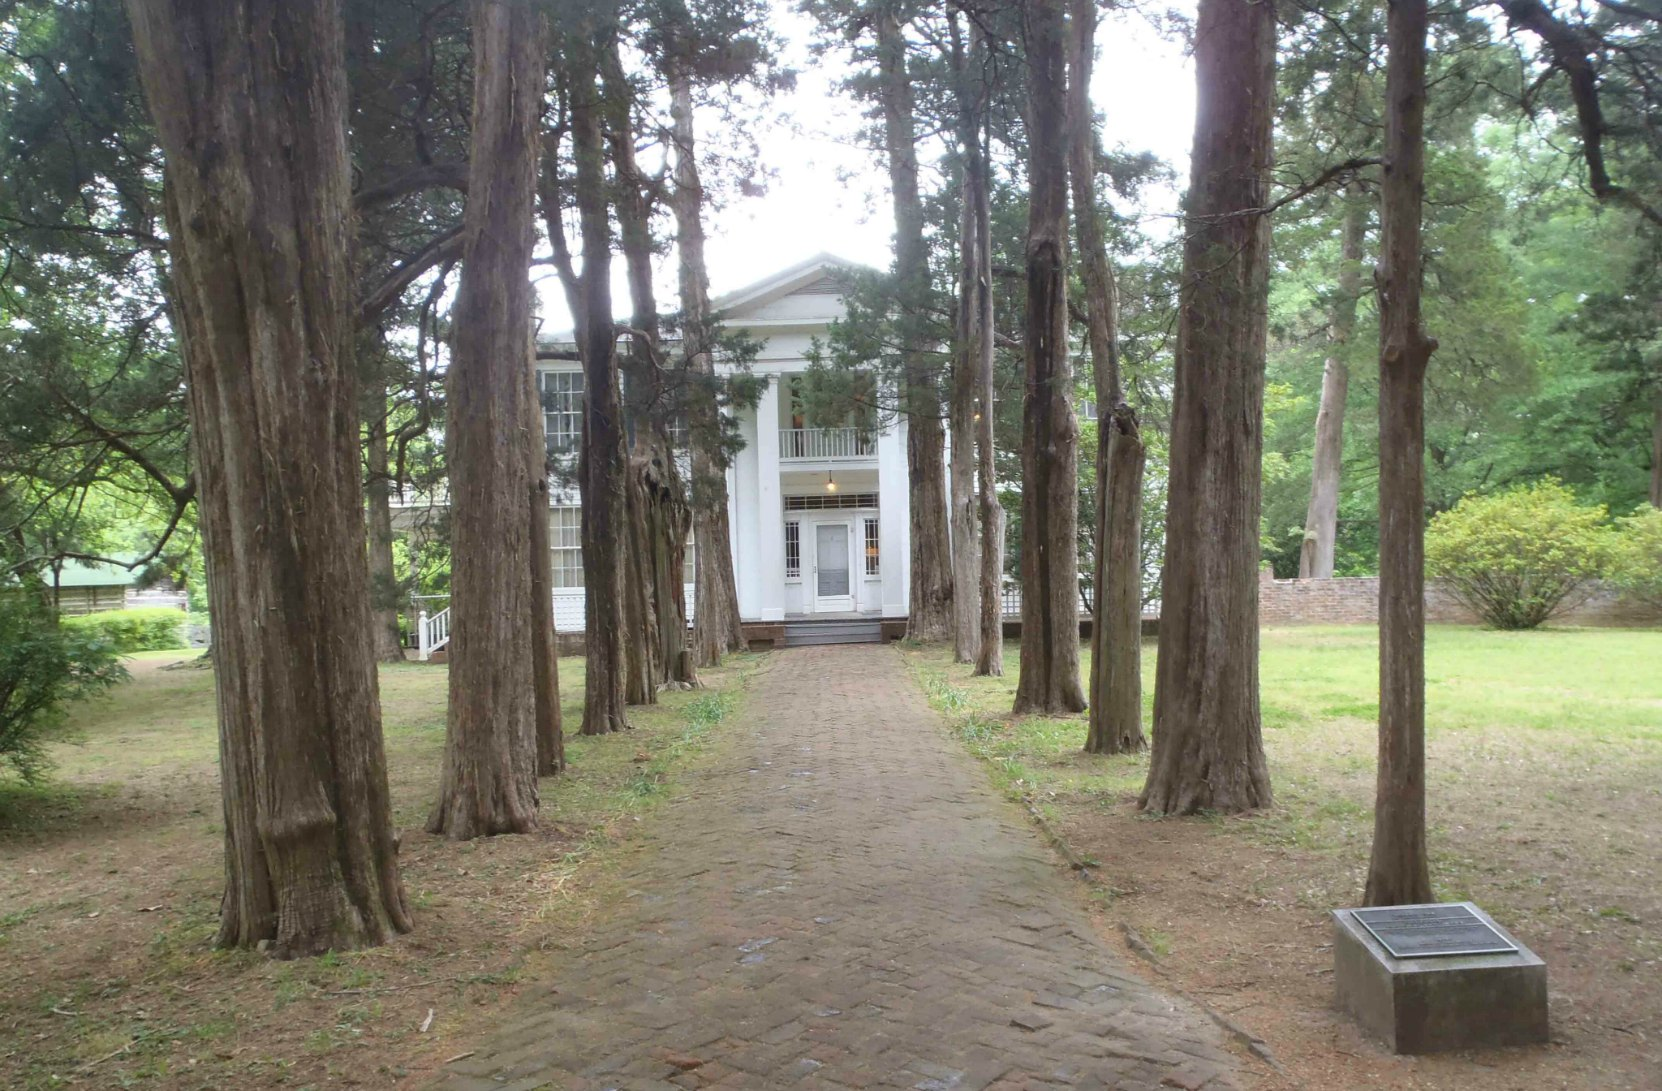 The entrance walkway to Rowan Oak, William Faulkner's home from 1930 until his death in 1962.